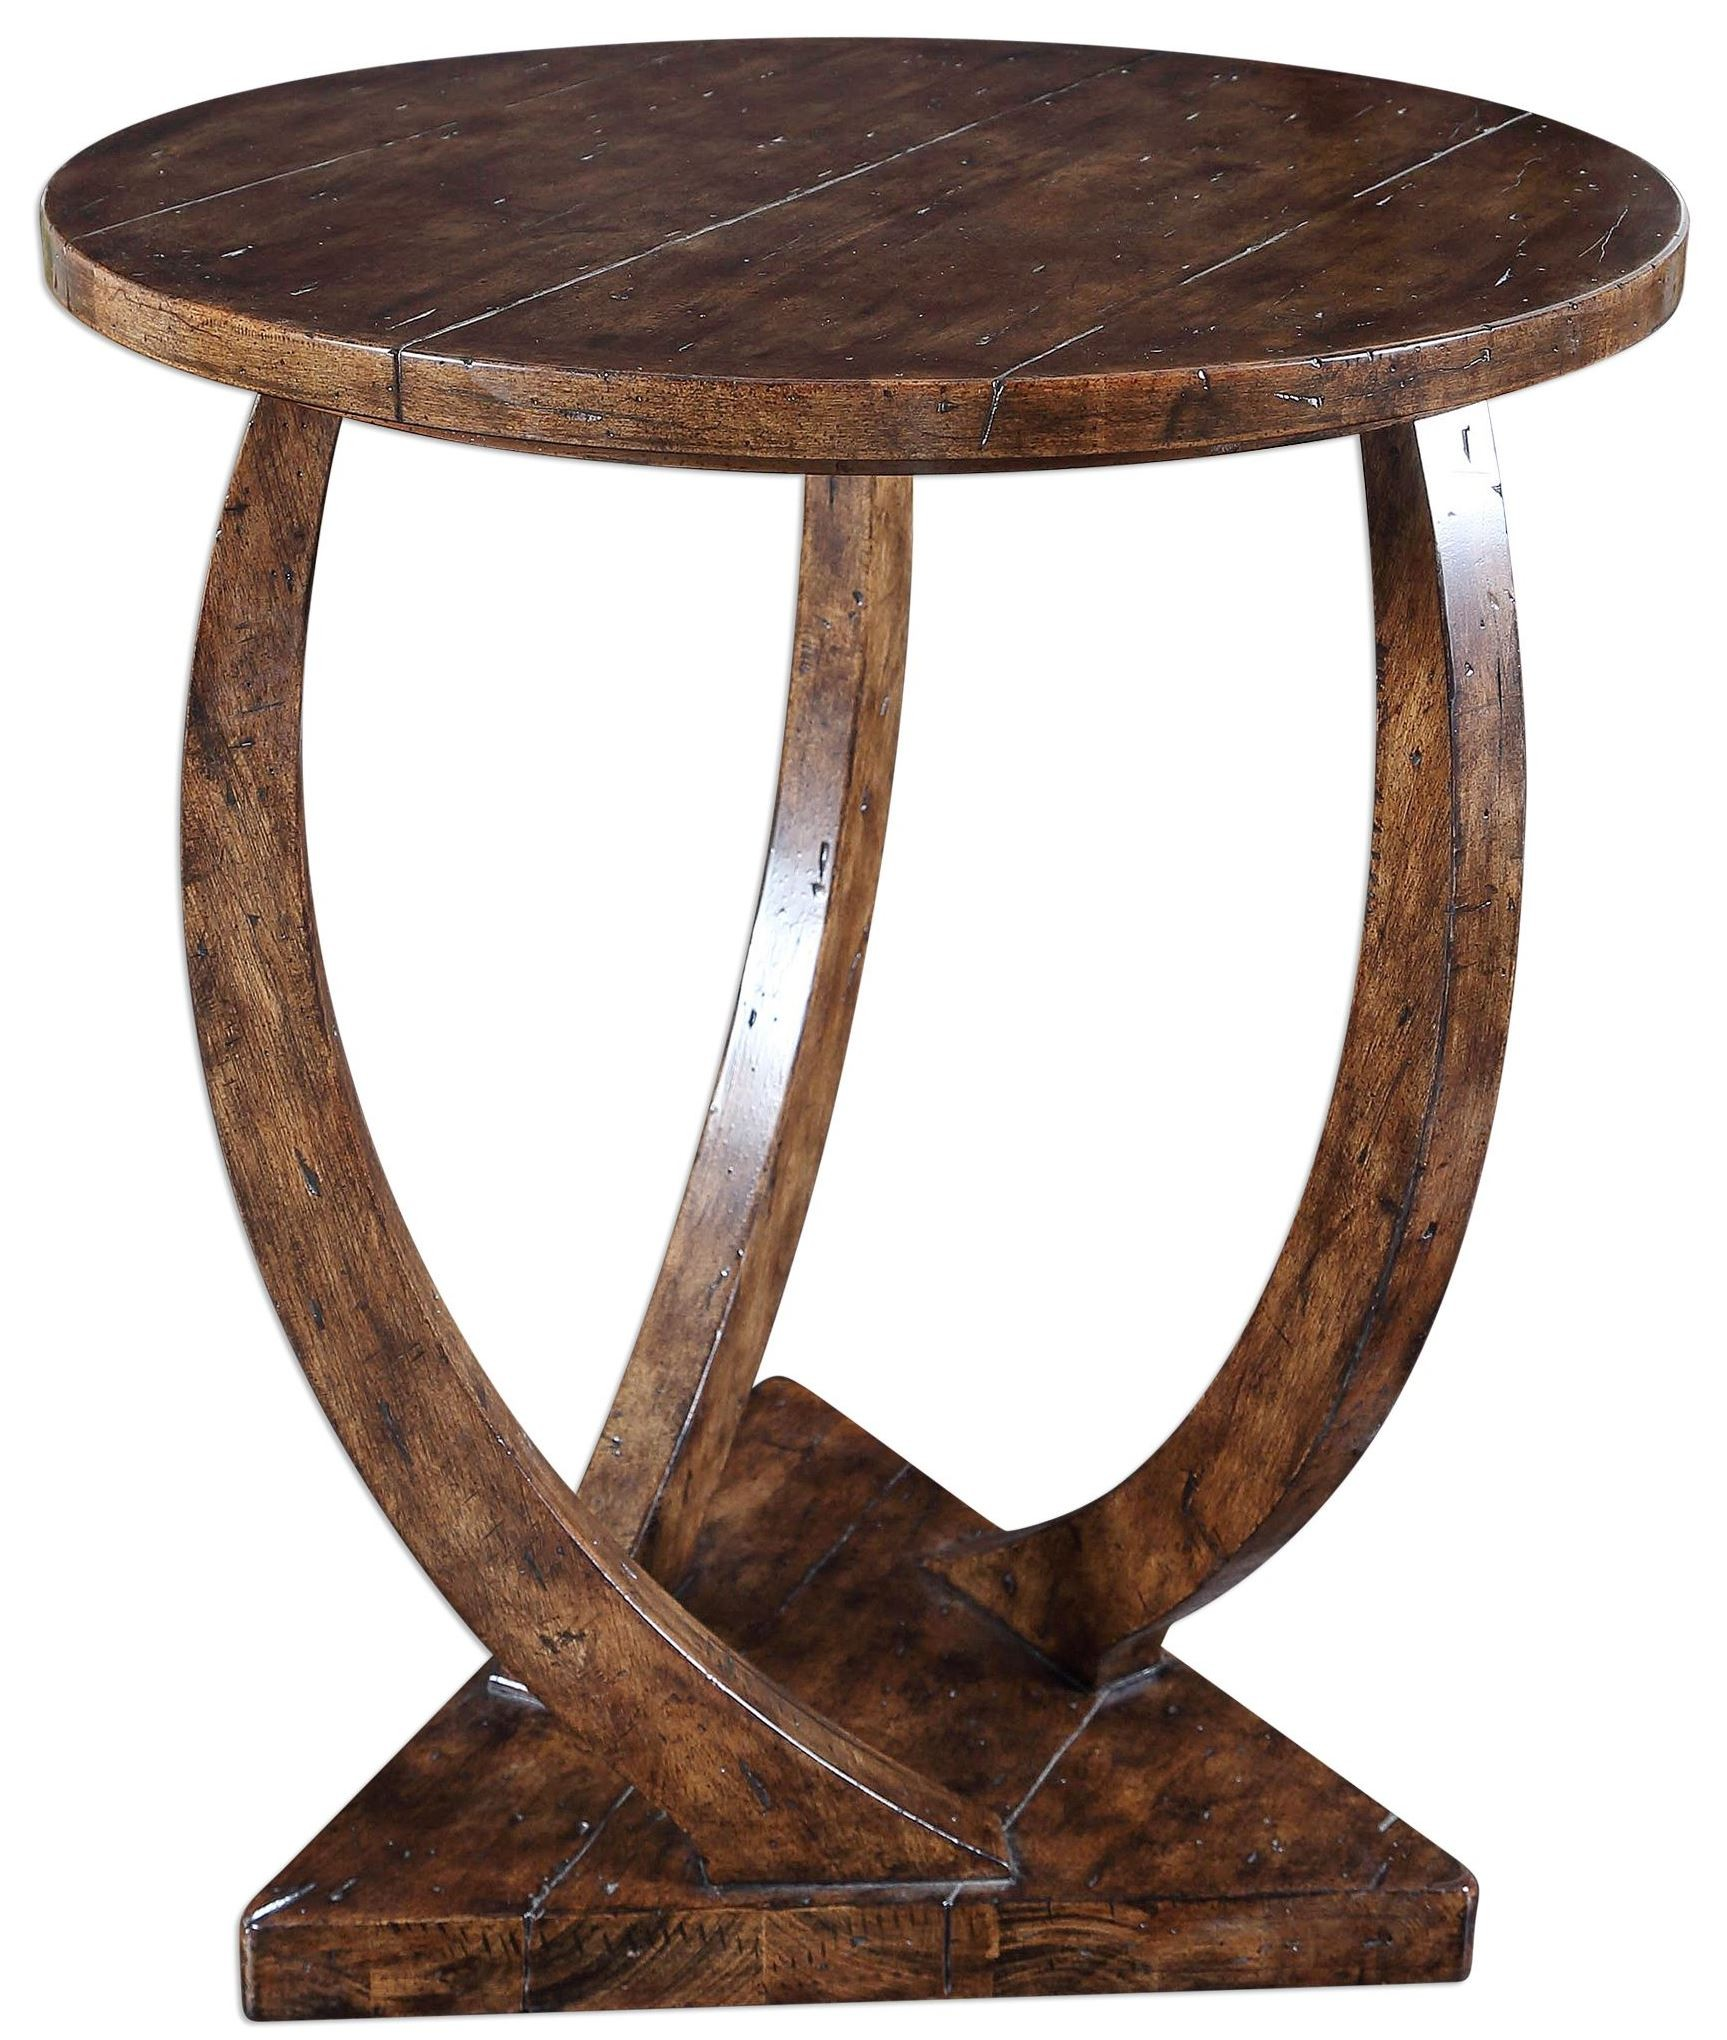 round accent table with glass top pandhari from uttermost tablecloth high placemat inch tall console red end target bedroom side tables metal coffee legs ceiling lights jcpenney